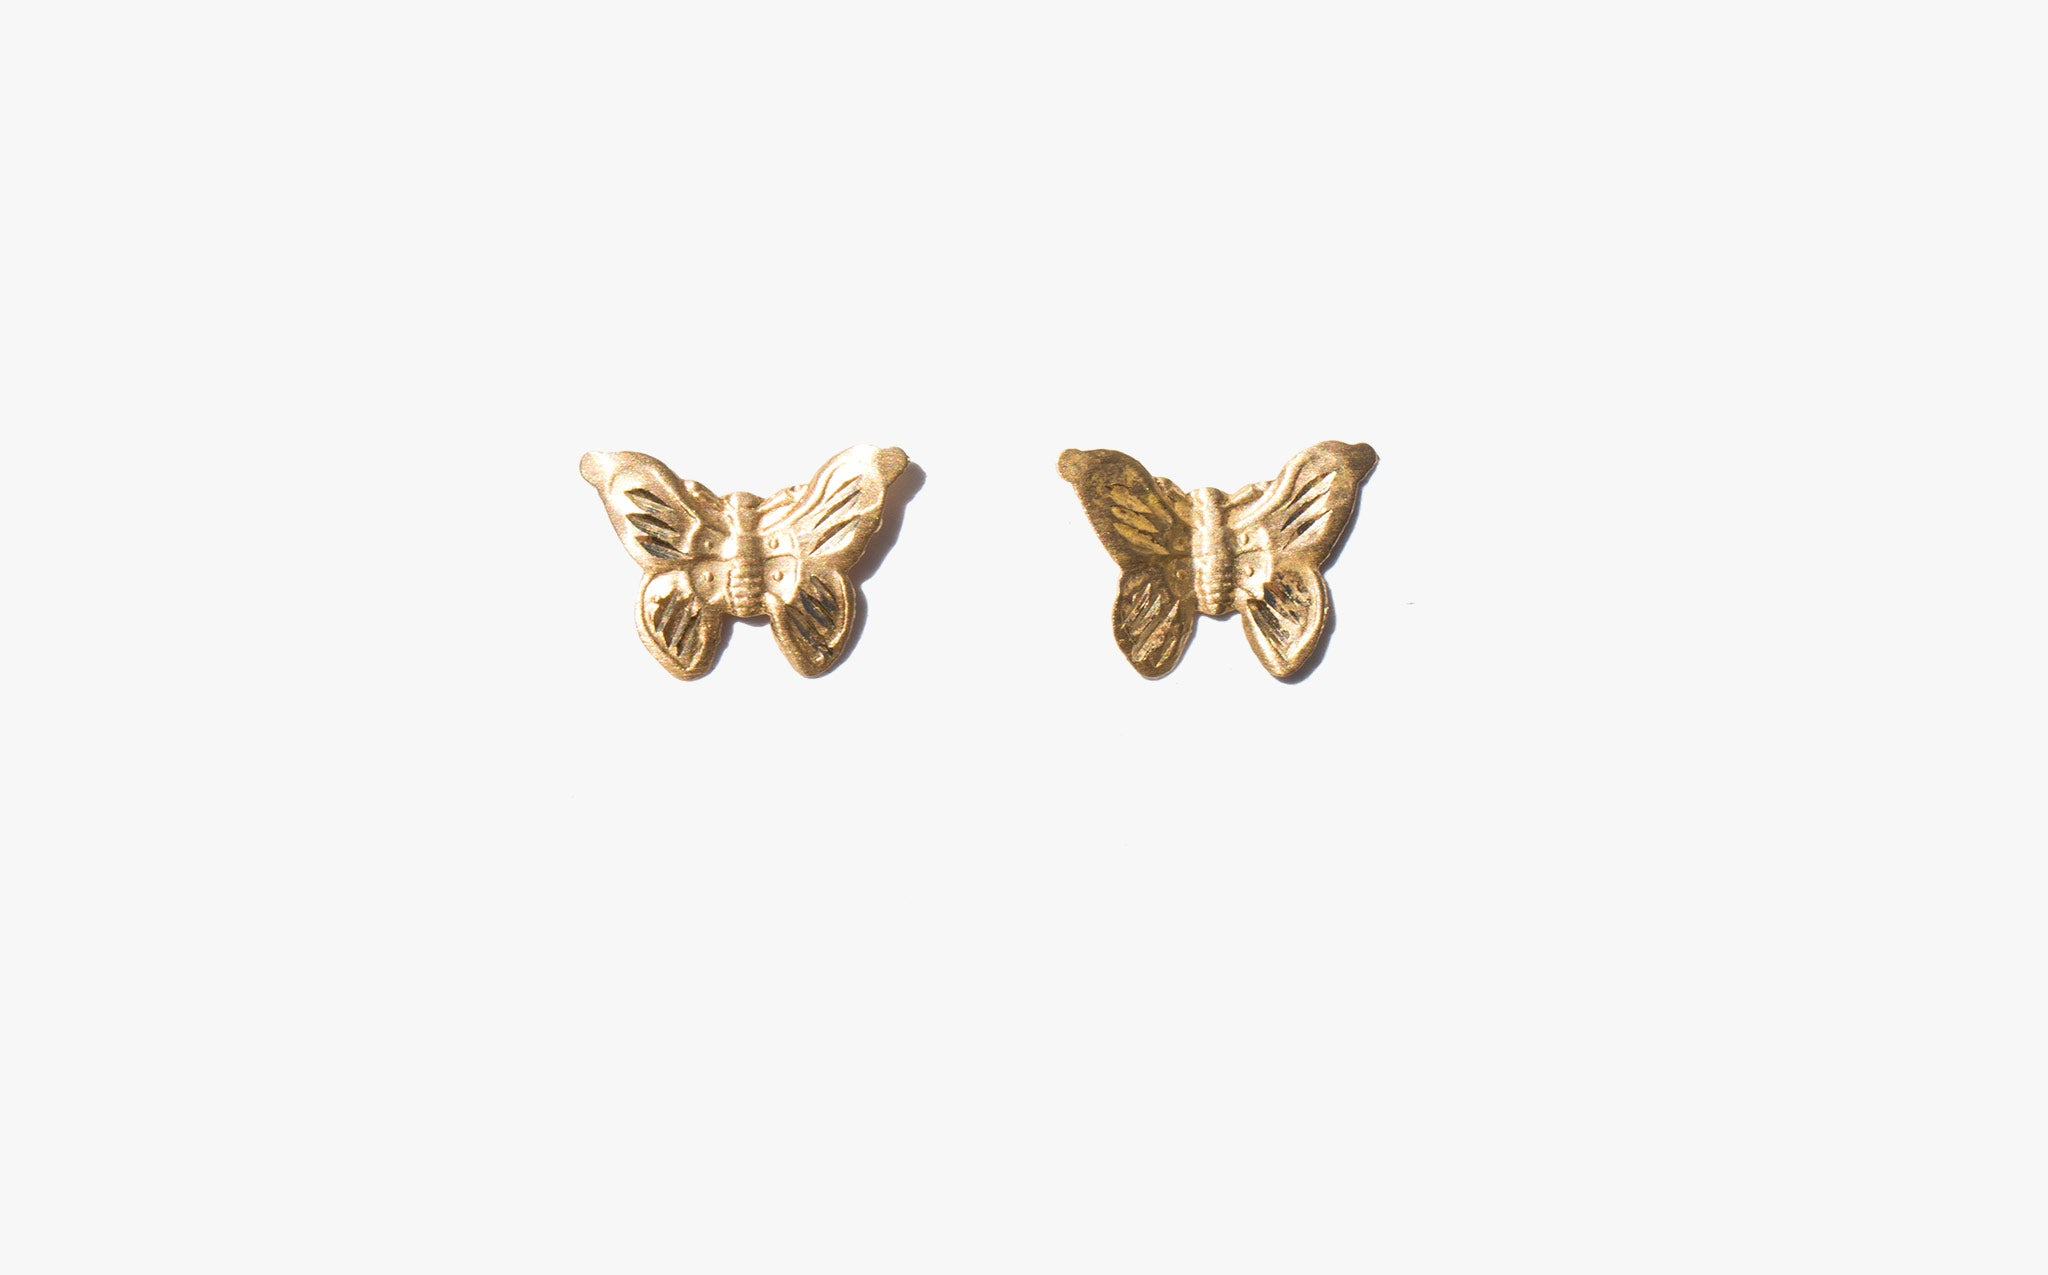 Farfalla Earrings